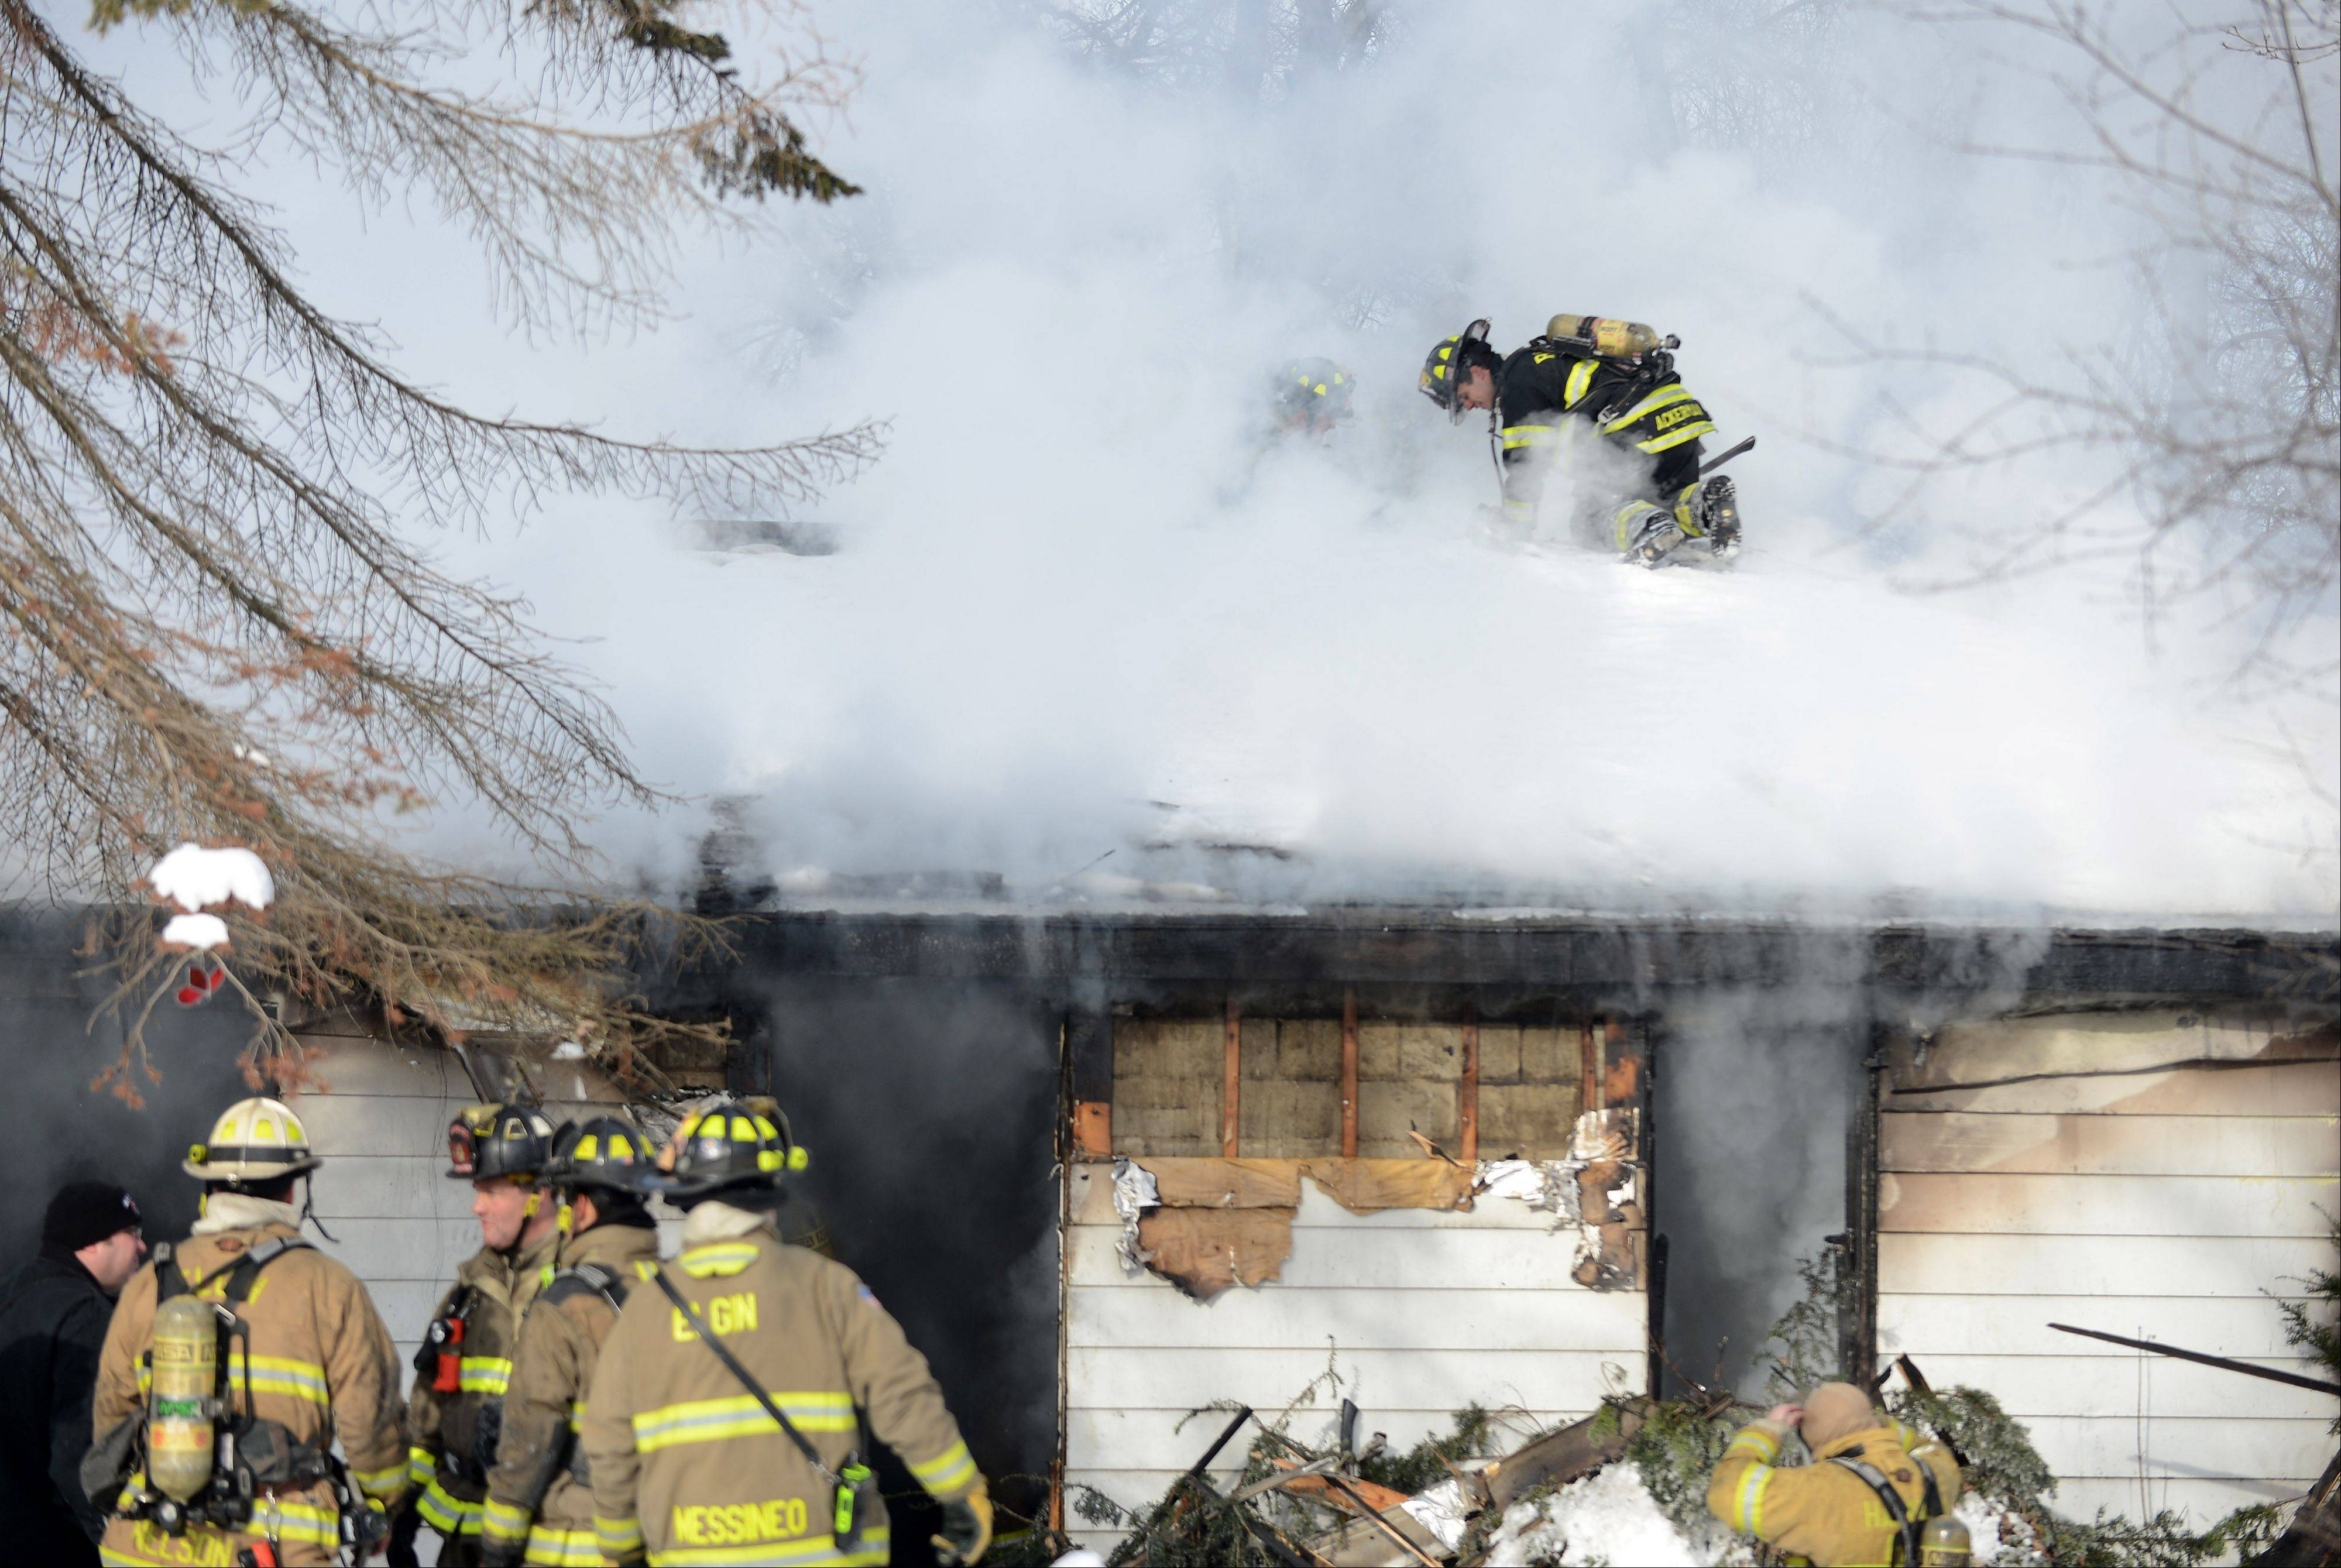 Firefighters from multiple departments work a fire Wednesday morning on the 100 block of Beck Avenue in South Elgin. A man and a dog died in the fire while the man's wife and another dog were saved.